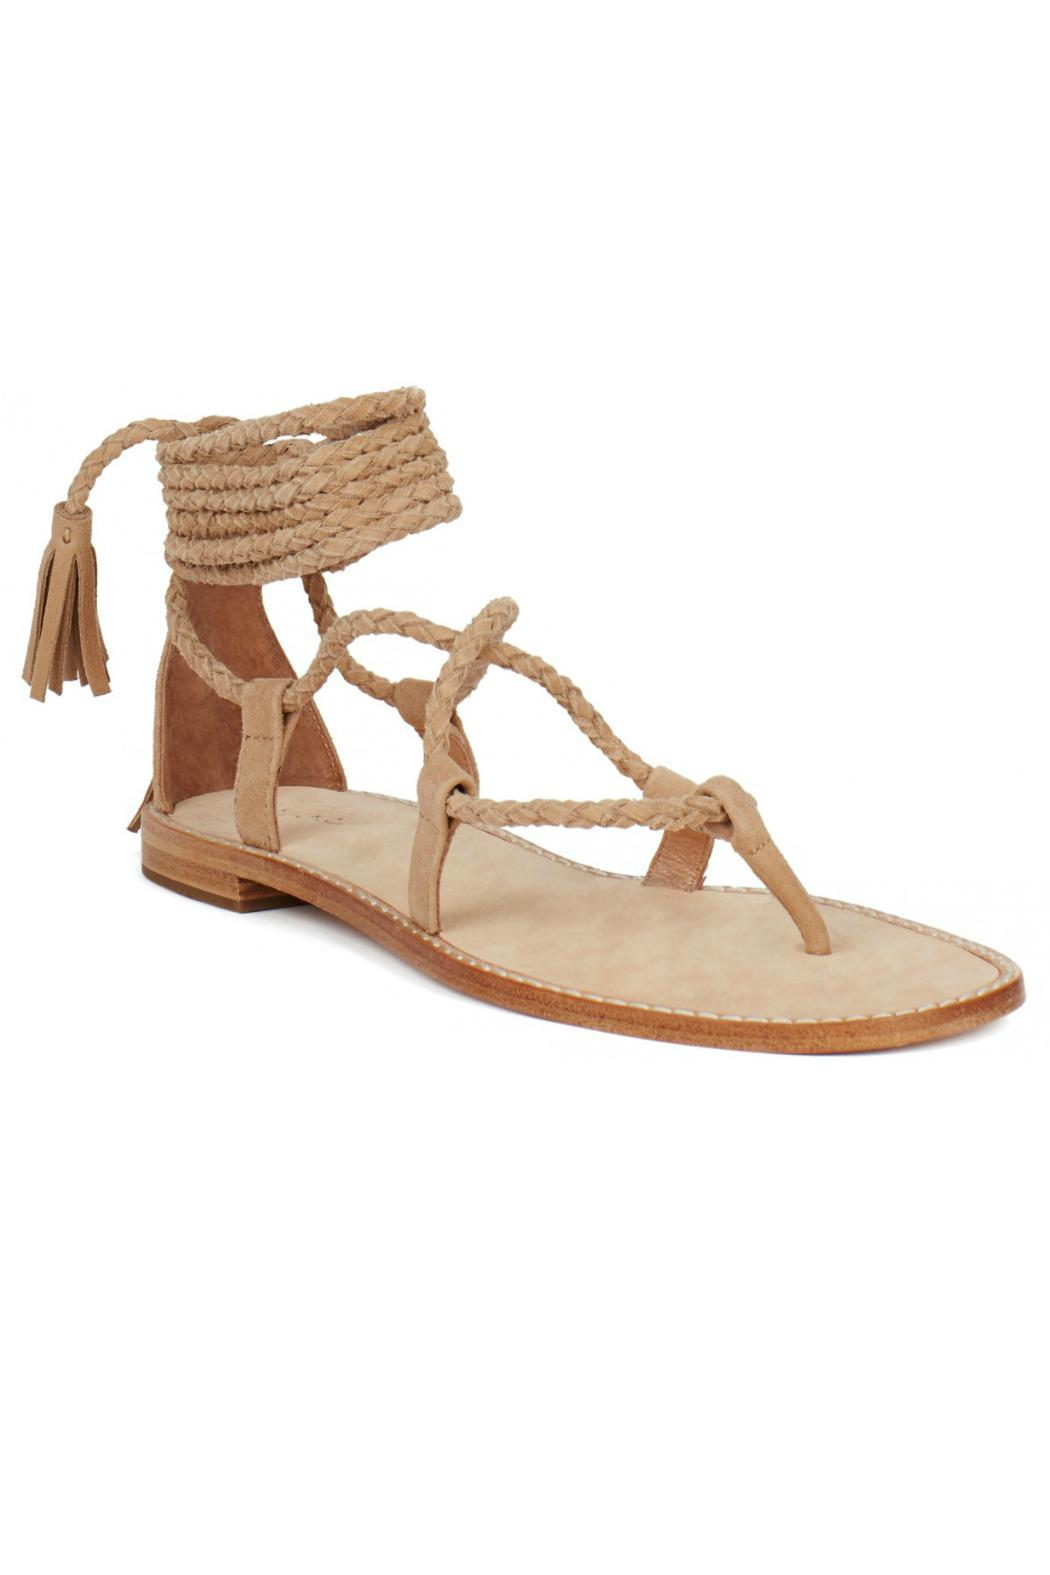 Joie Bailee Sandals - Front Full Image